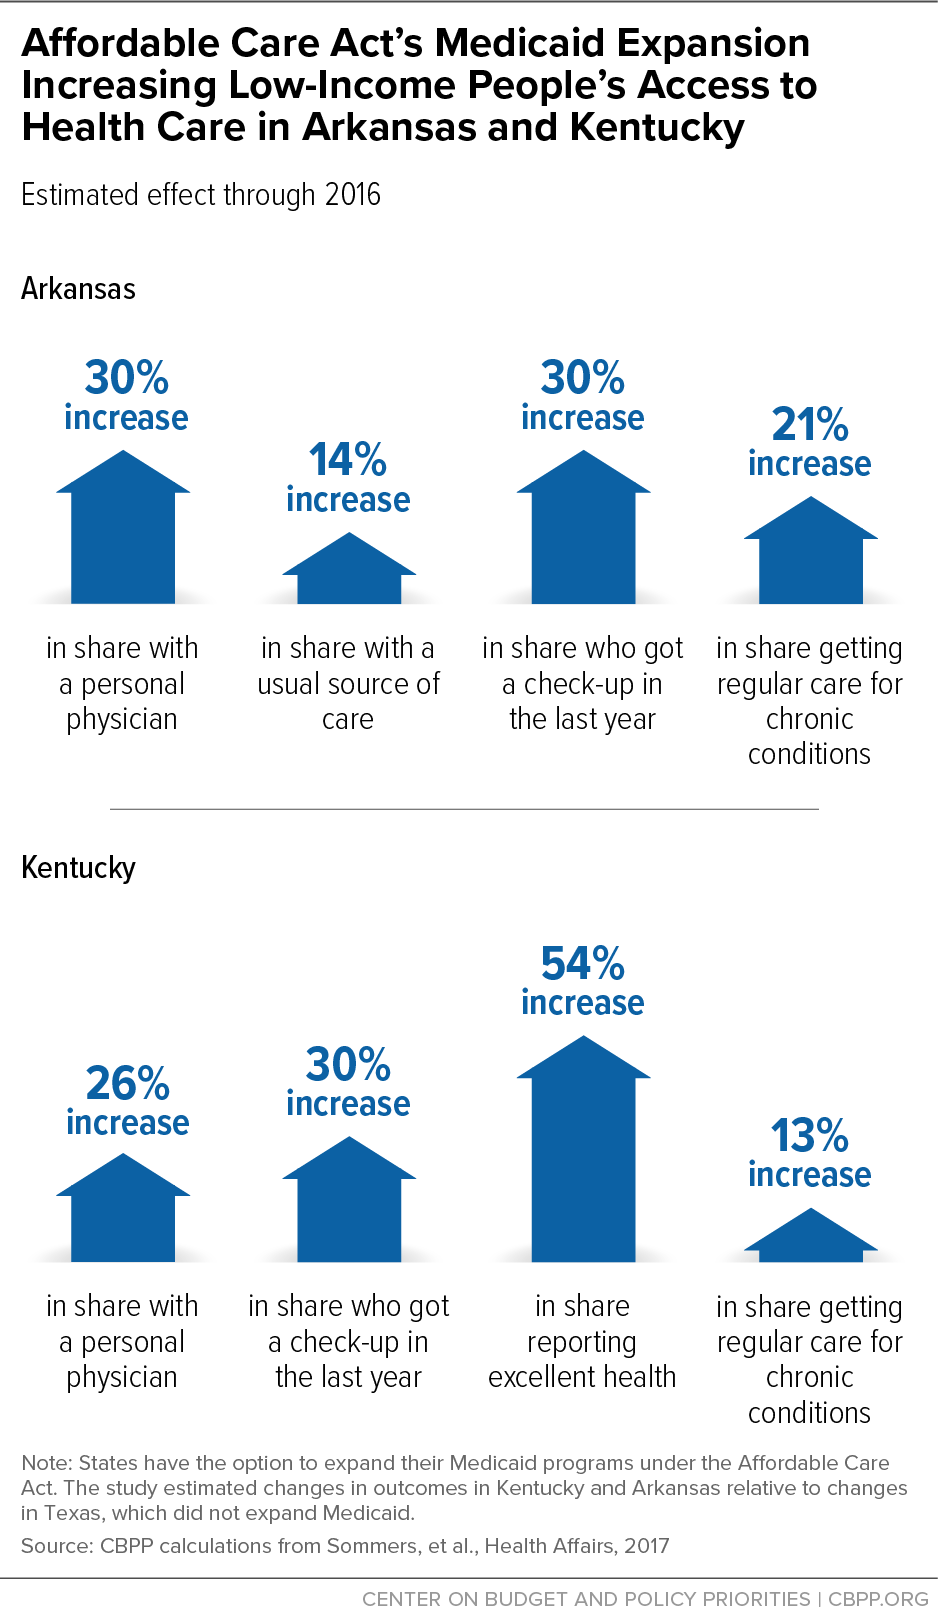 Affordable Care Act's Medicaid Expansion Increasing Low-Income People's Access to Health Care in Arkansas and Kentucky